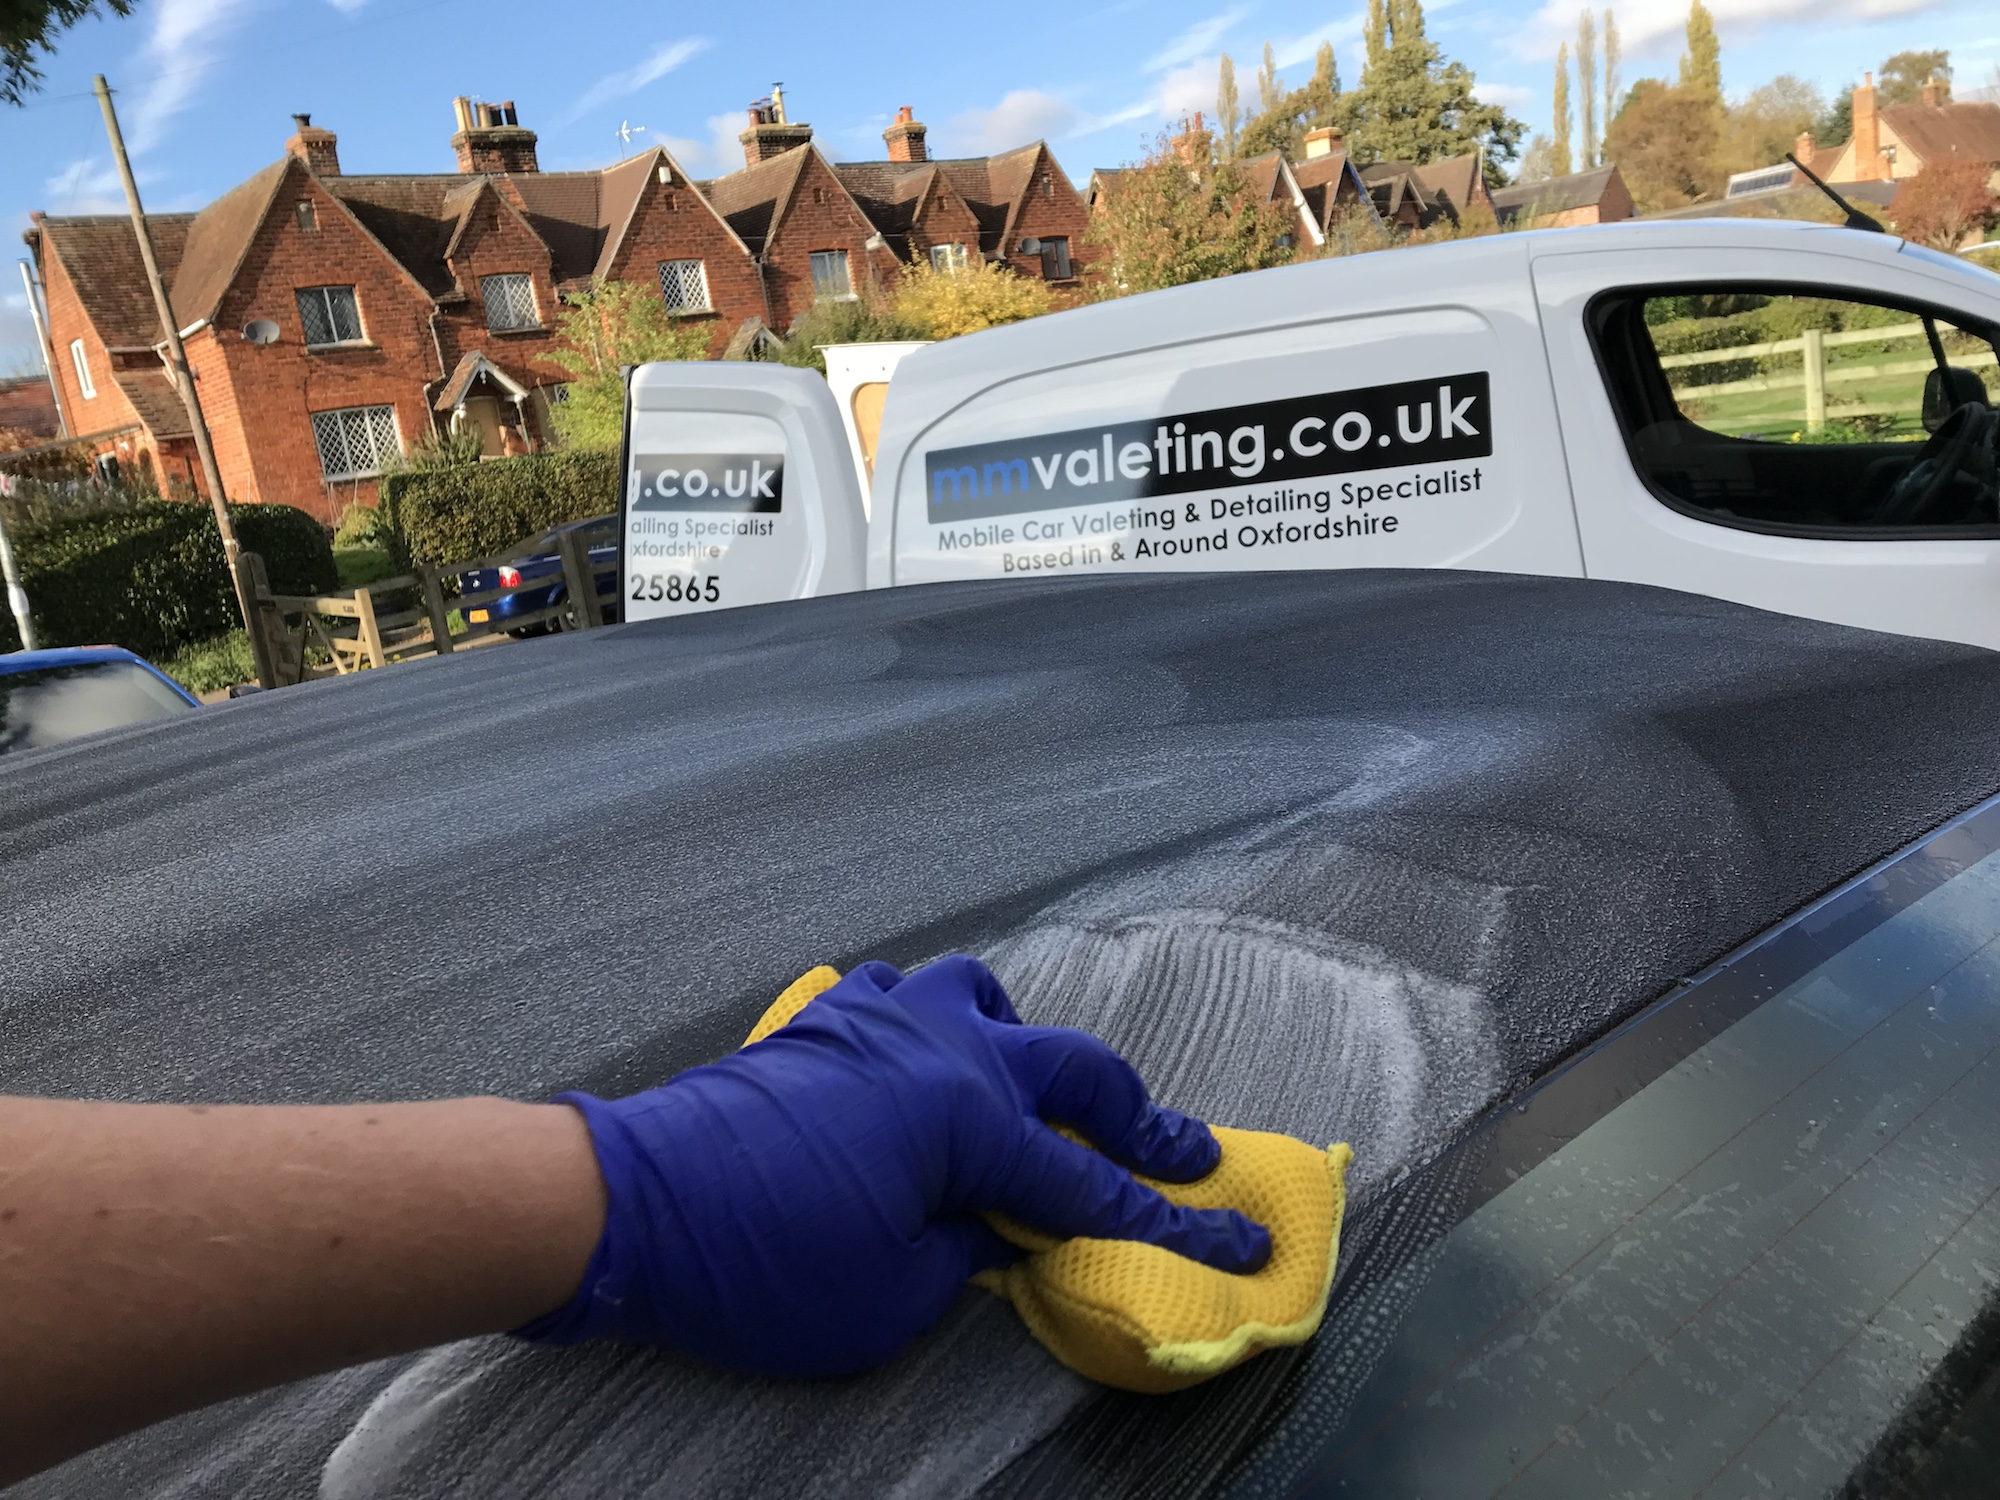 Fabric Hood cleaning for your vehicle. A specialist service provided by mmvaleting in Buckinghamshire.